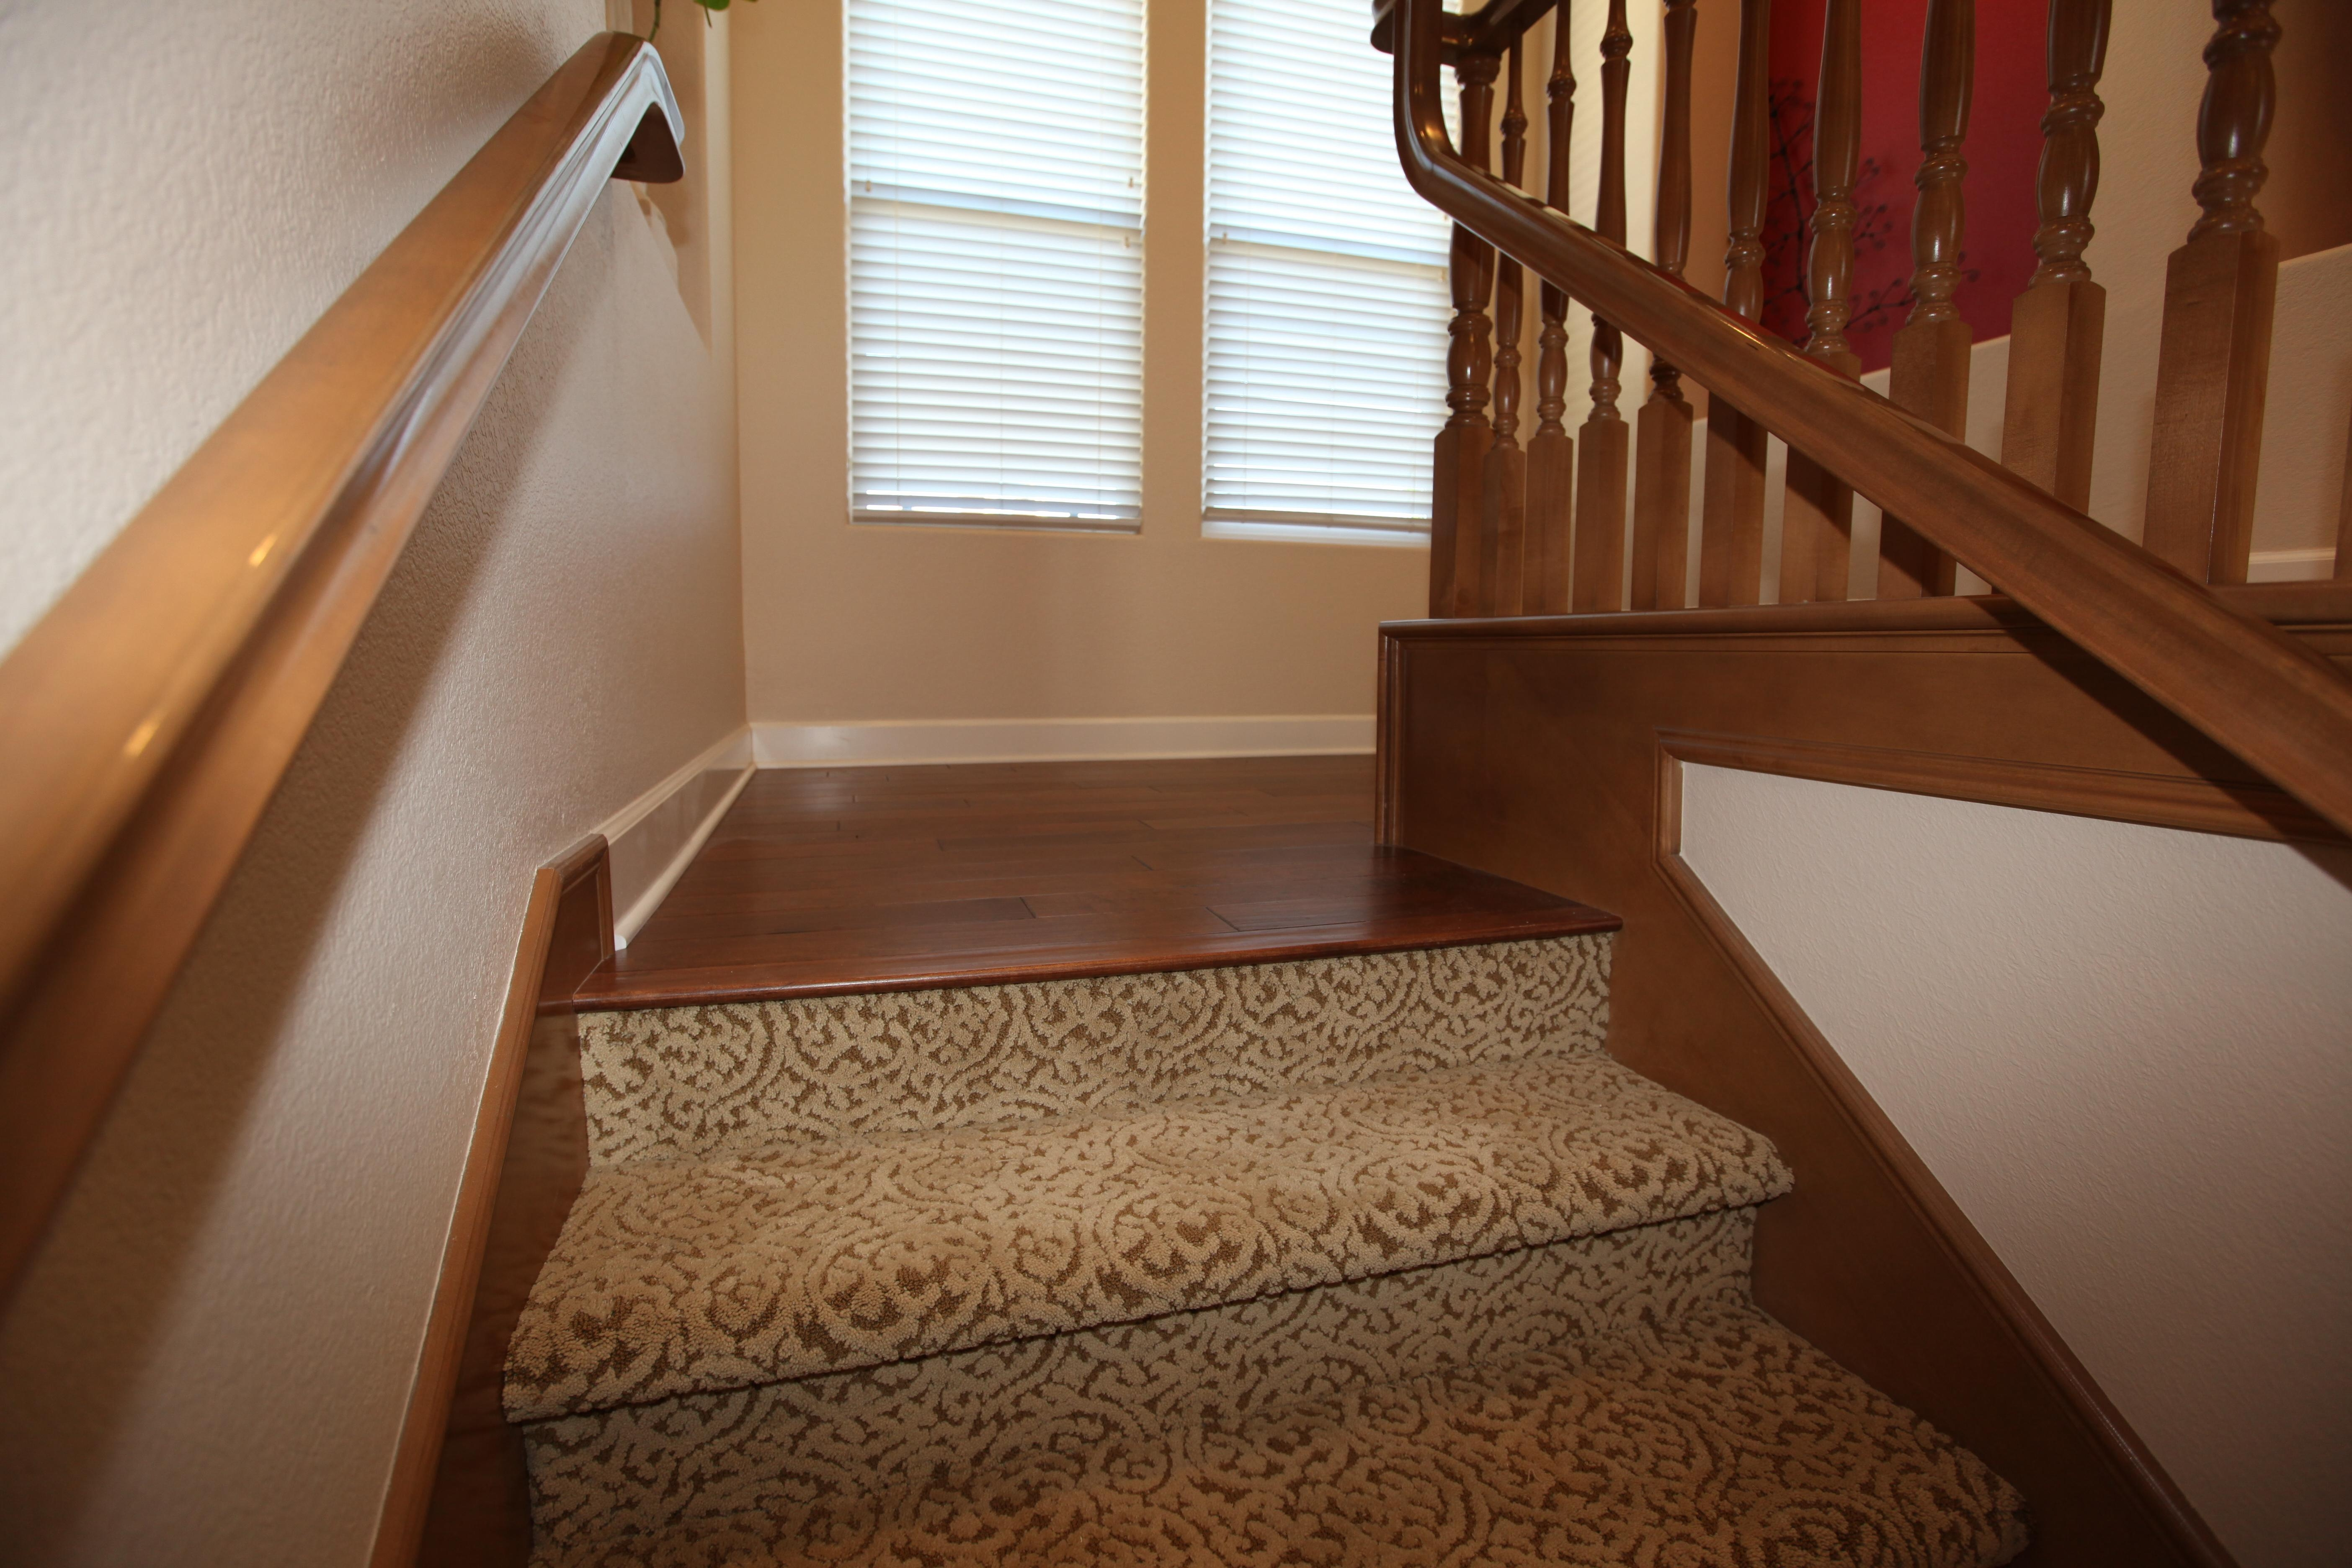 Carpet Stairs To Wood Floor Transition